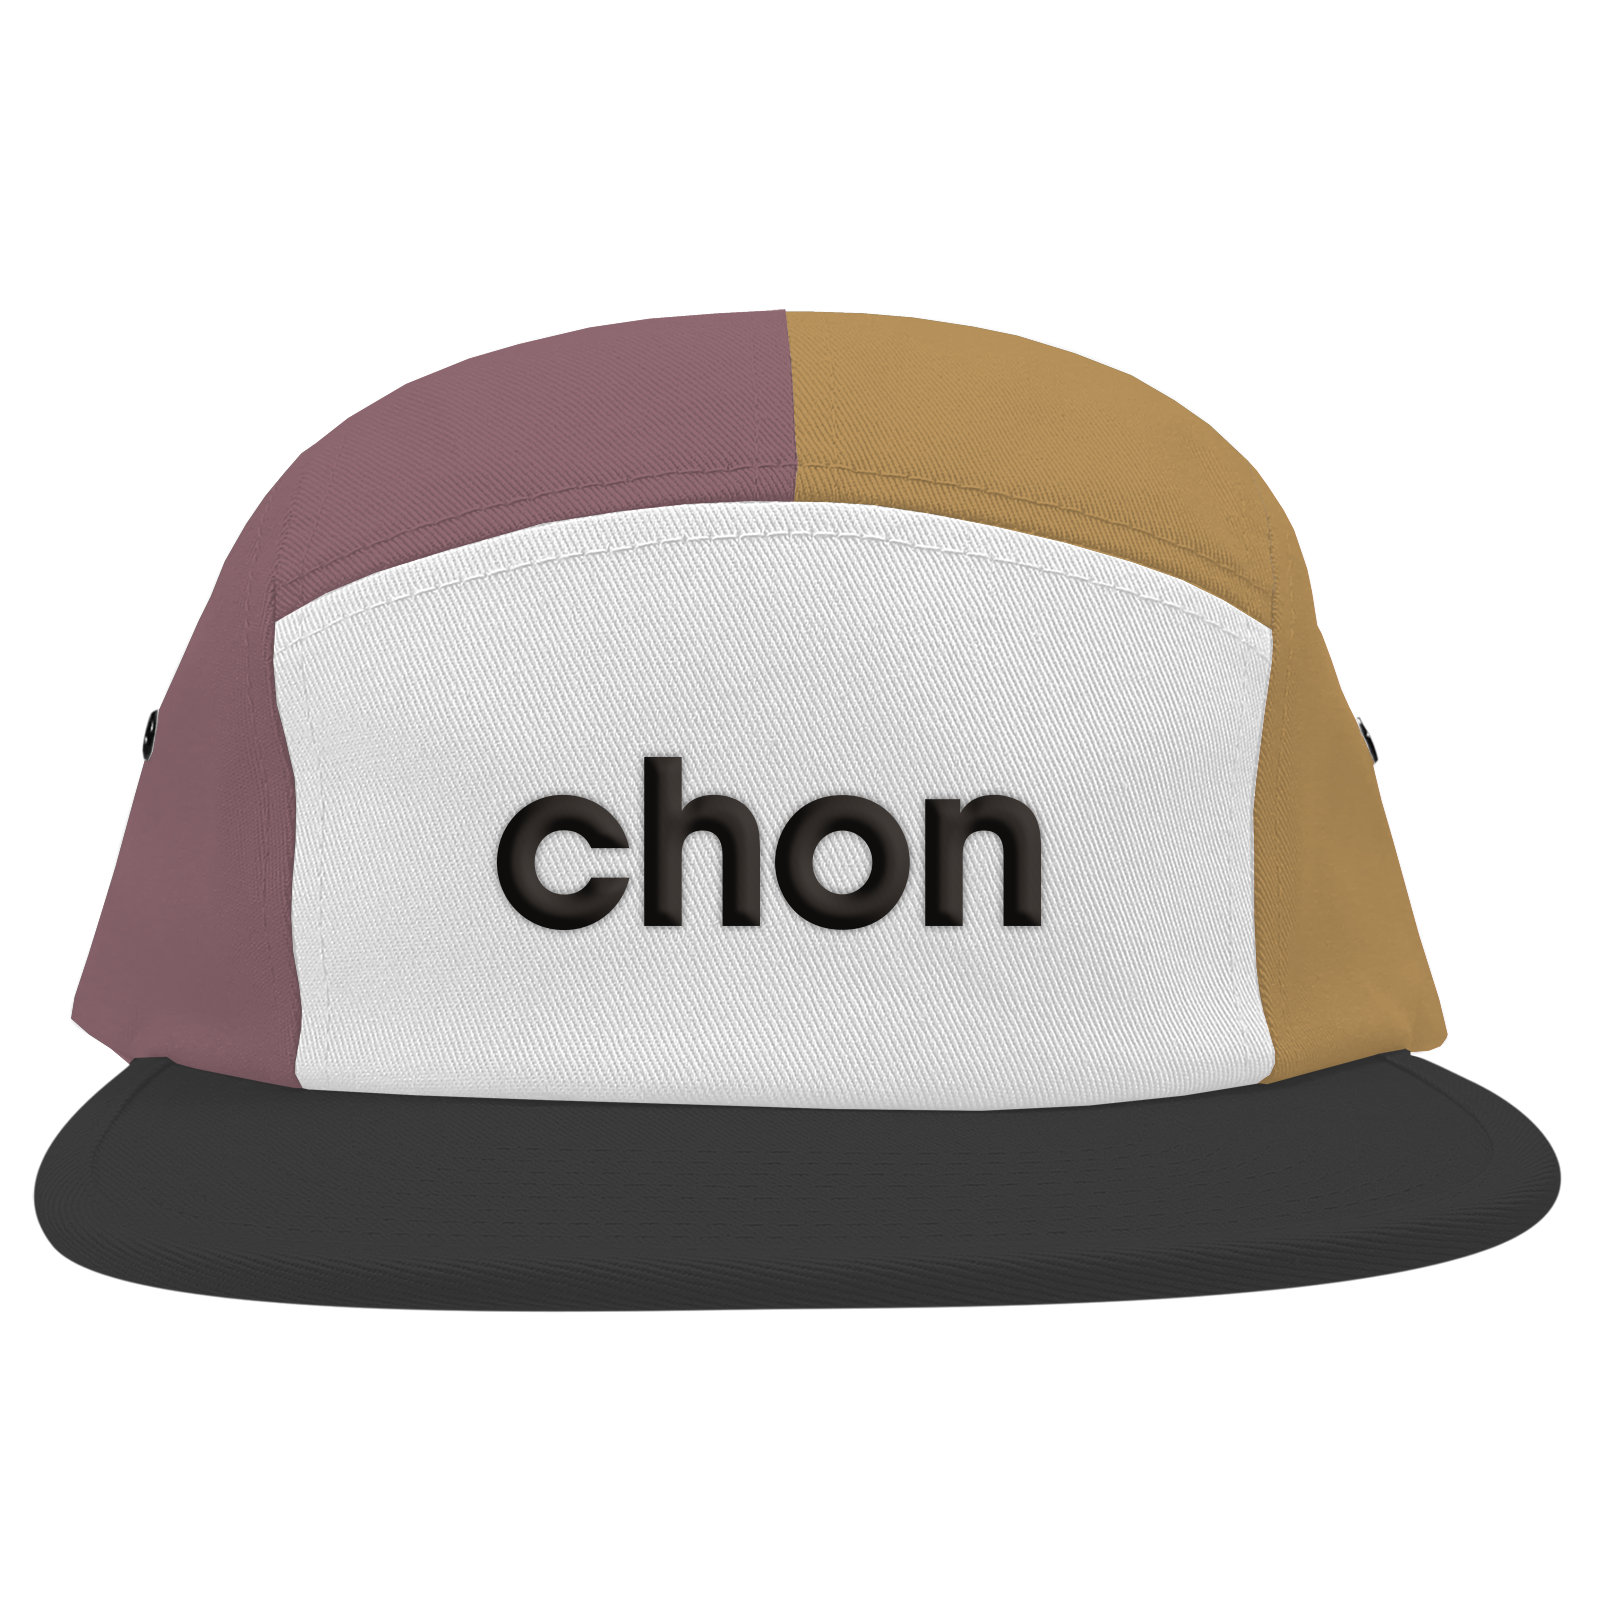 Chon Custom 5-Panel Camper